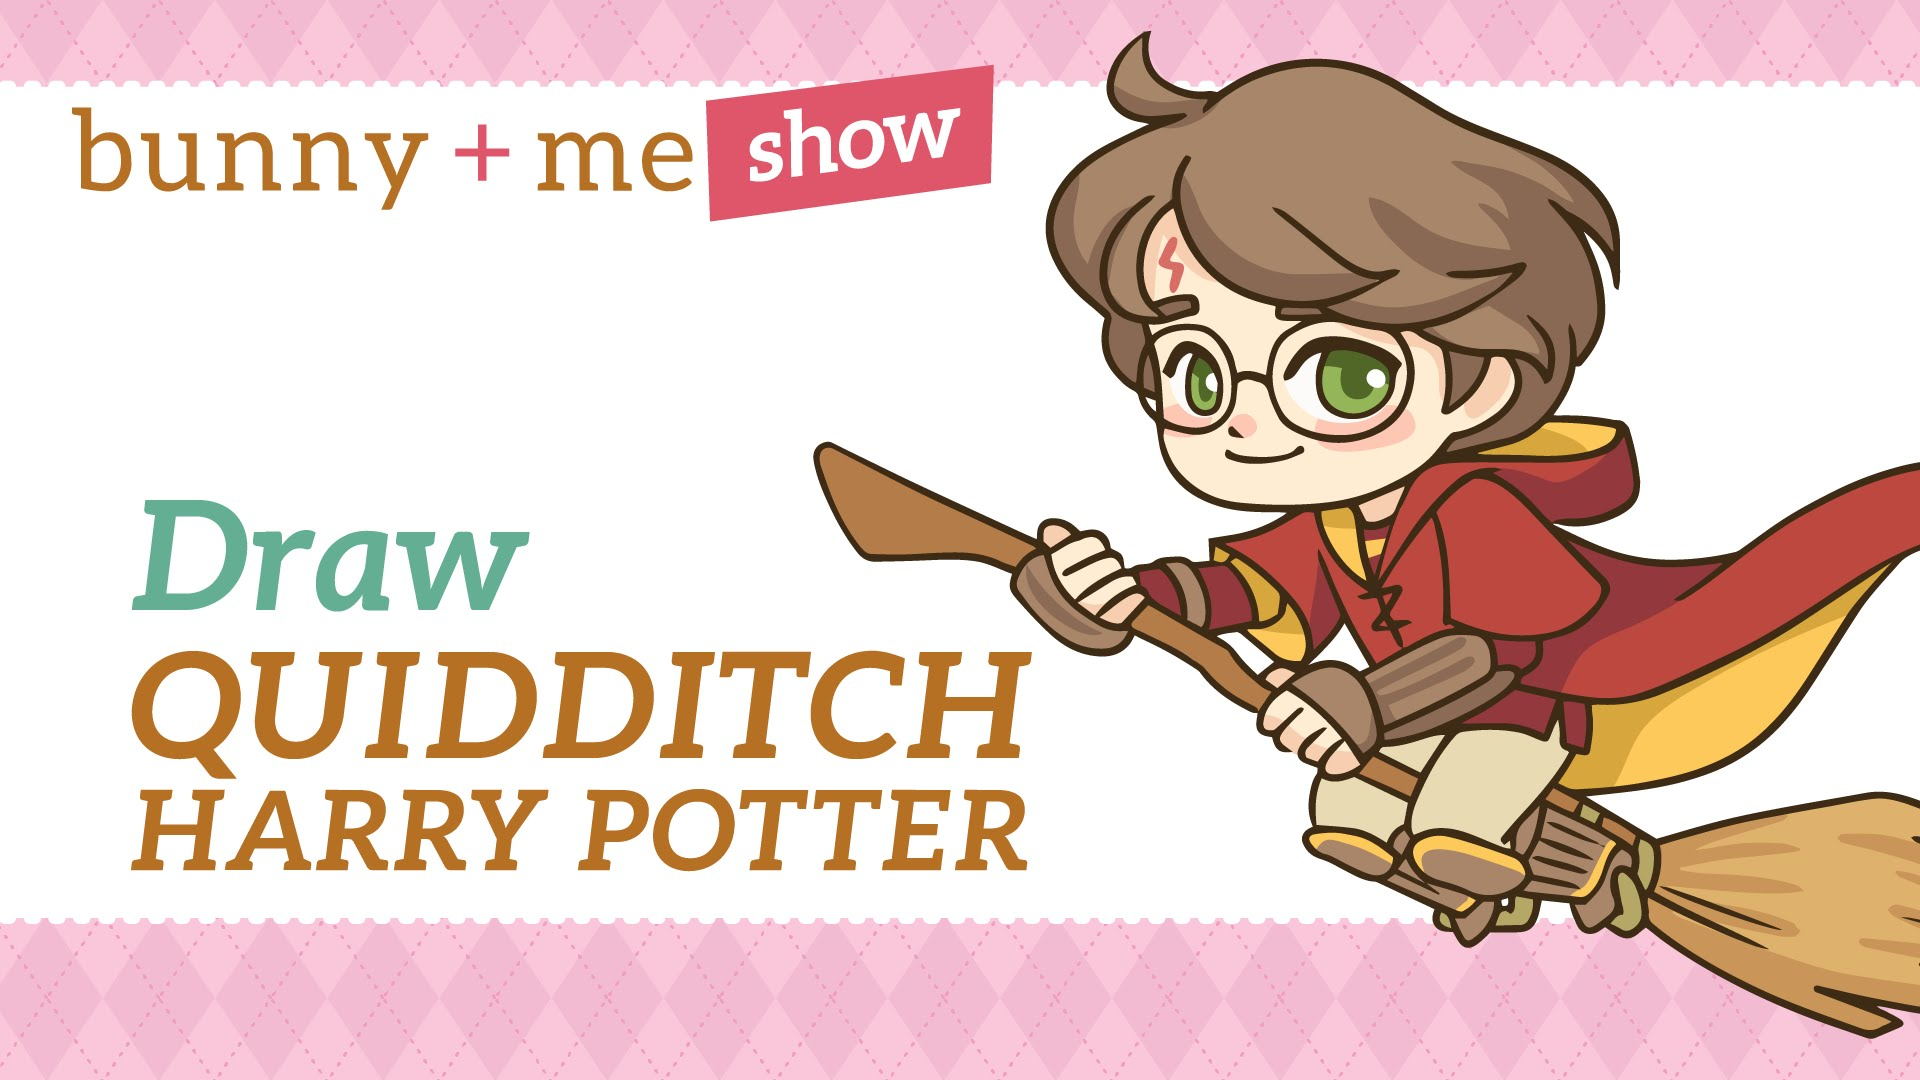 Harry potter clipart broom drawing. Quidditch tutorial how to